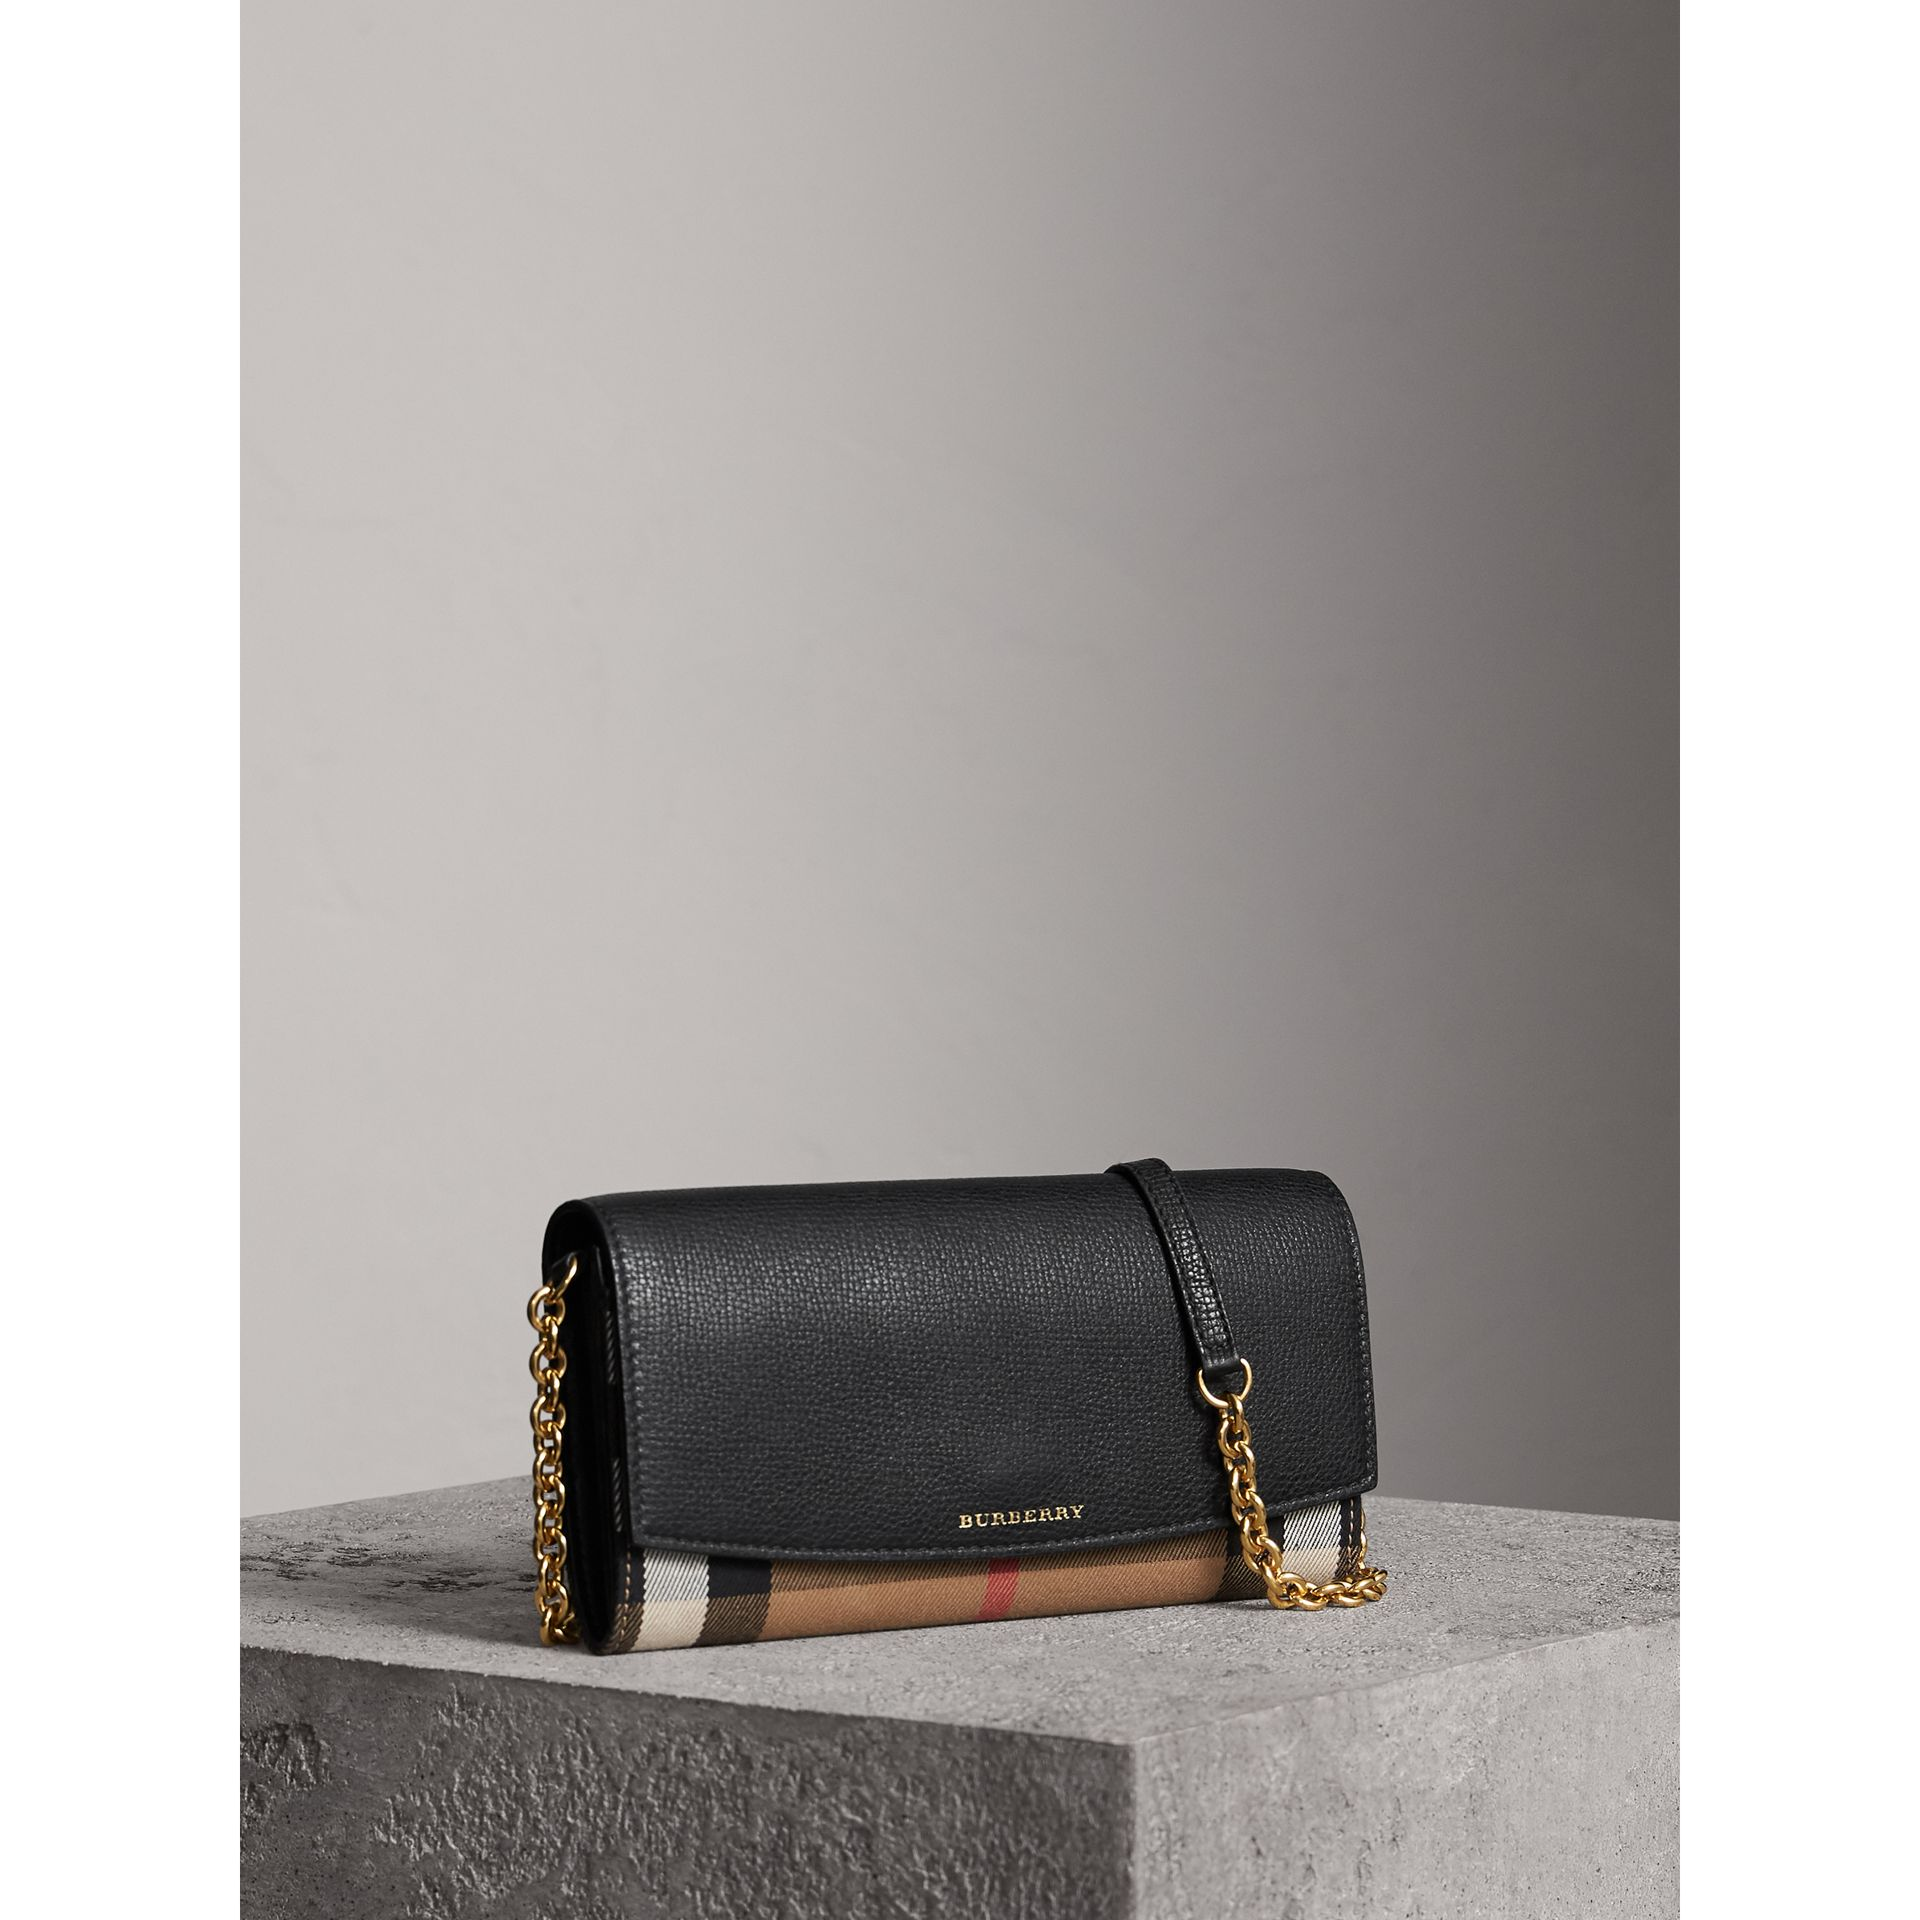 House Check and Leather Wallet with Chain in Black - Women | Burberry United Kingdom - gallery image 0